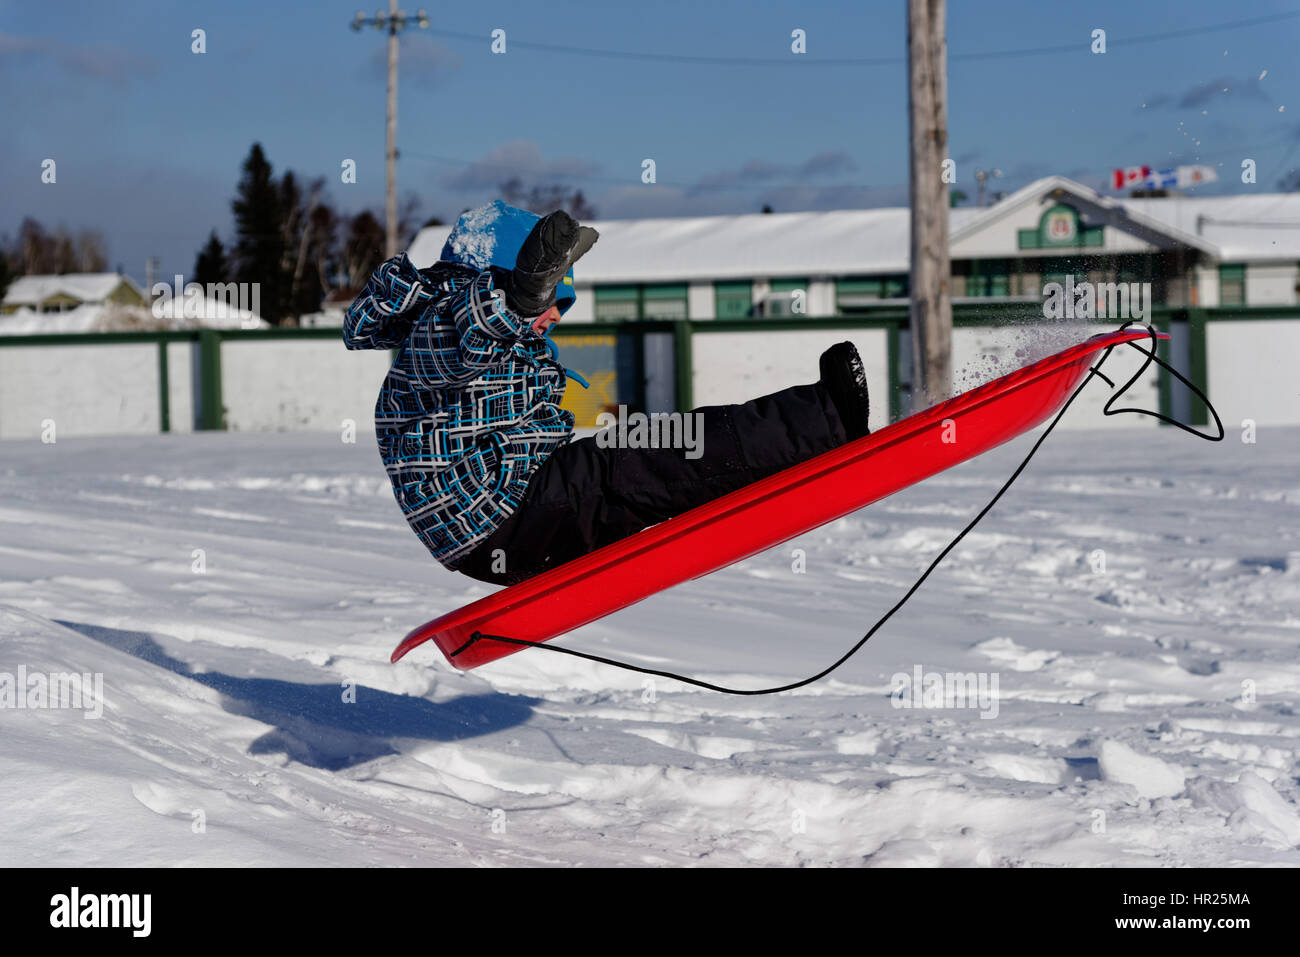 a-young-boy-4-yrs-old-jumping-into-the-air-on-a-sledge-in-quebec-winter-HR25MA.jpg